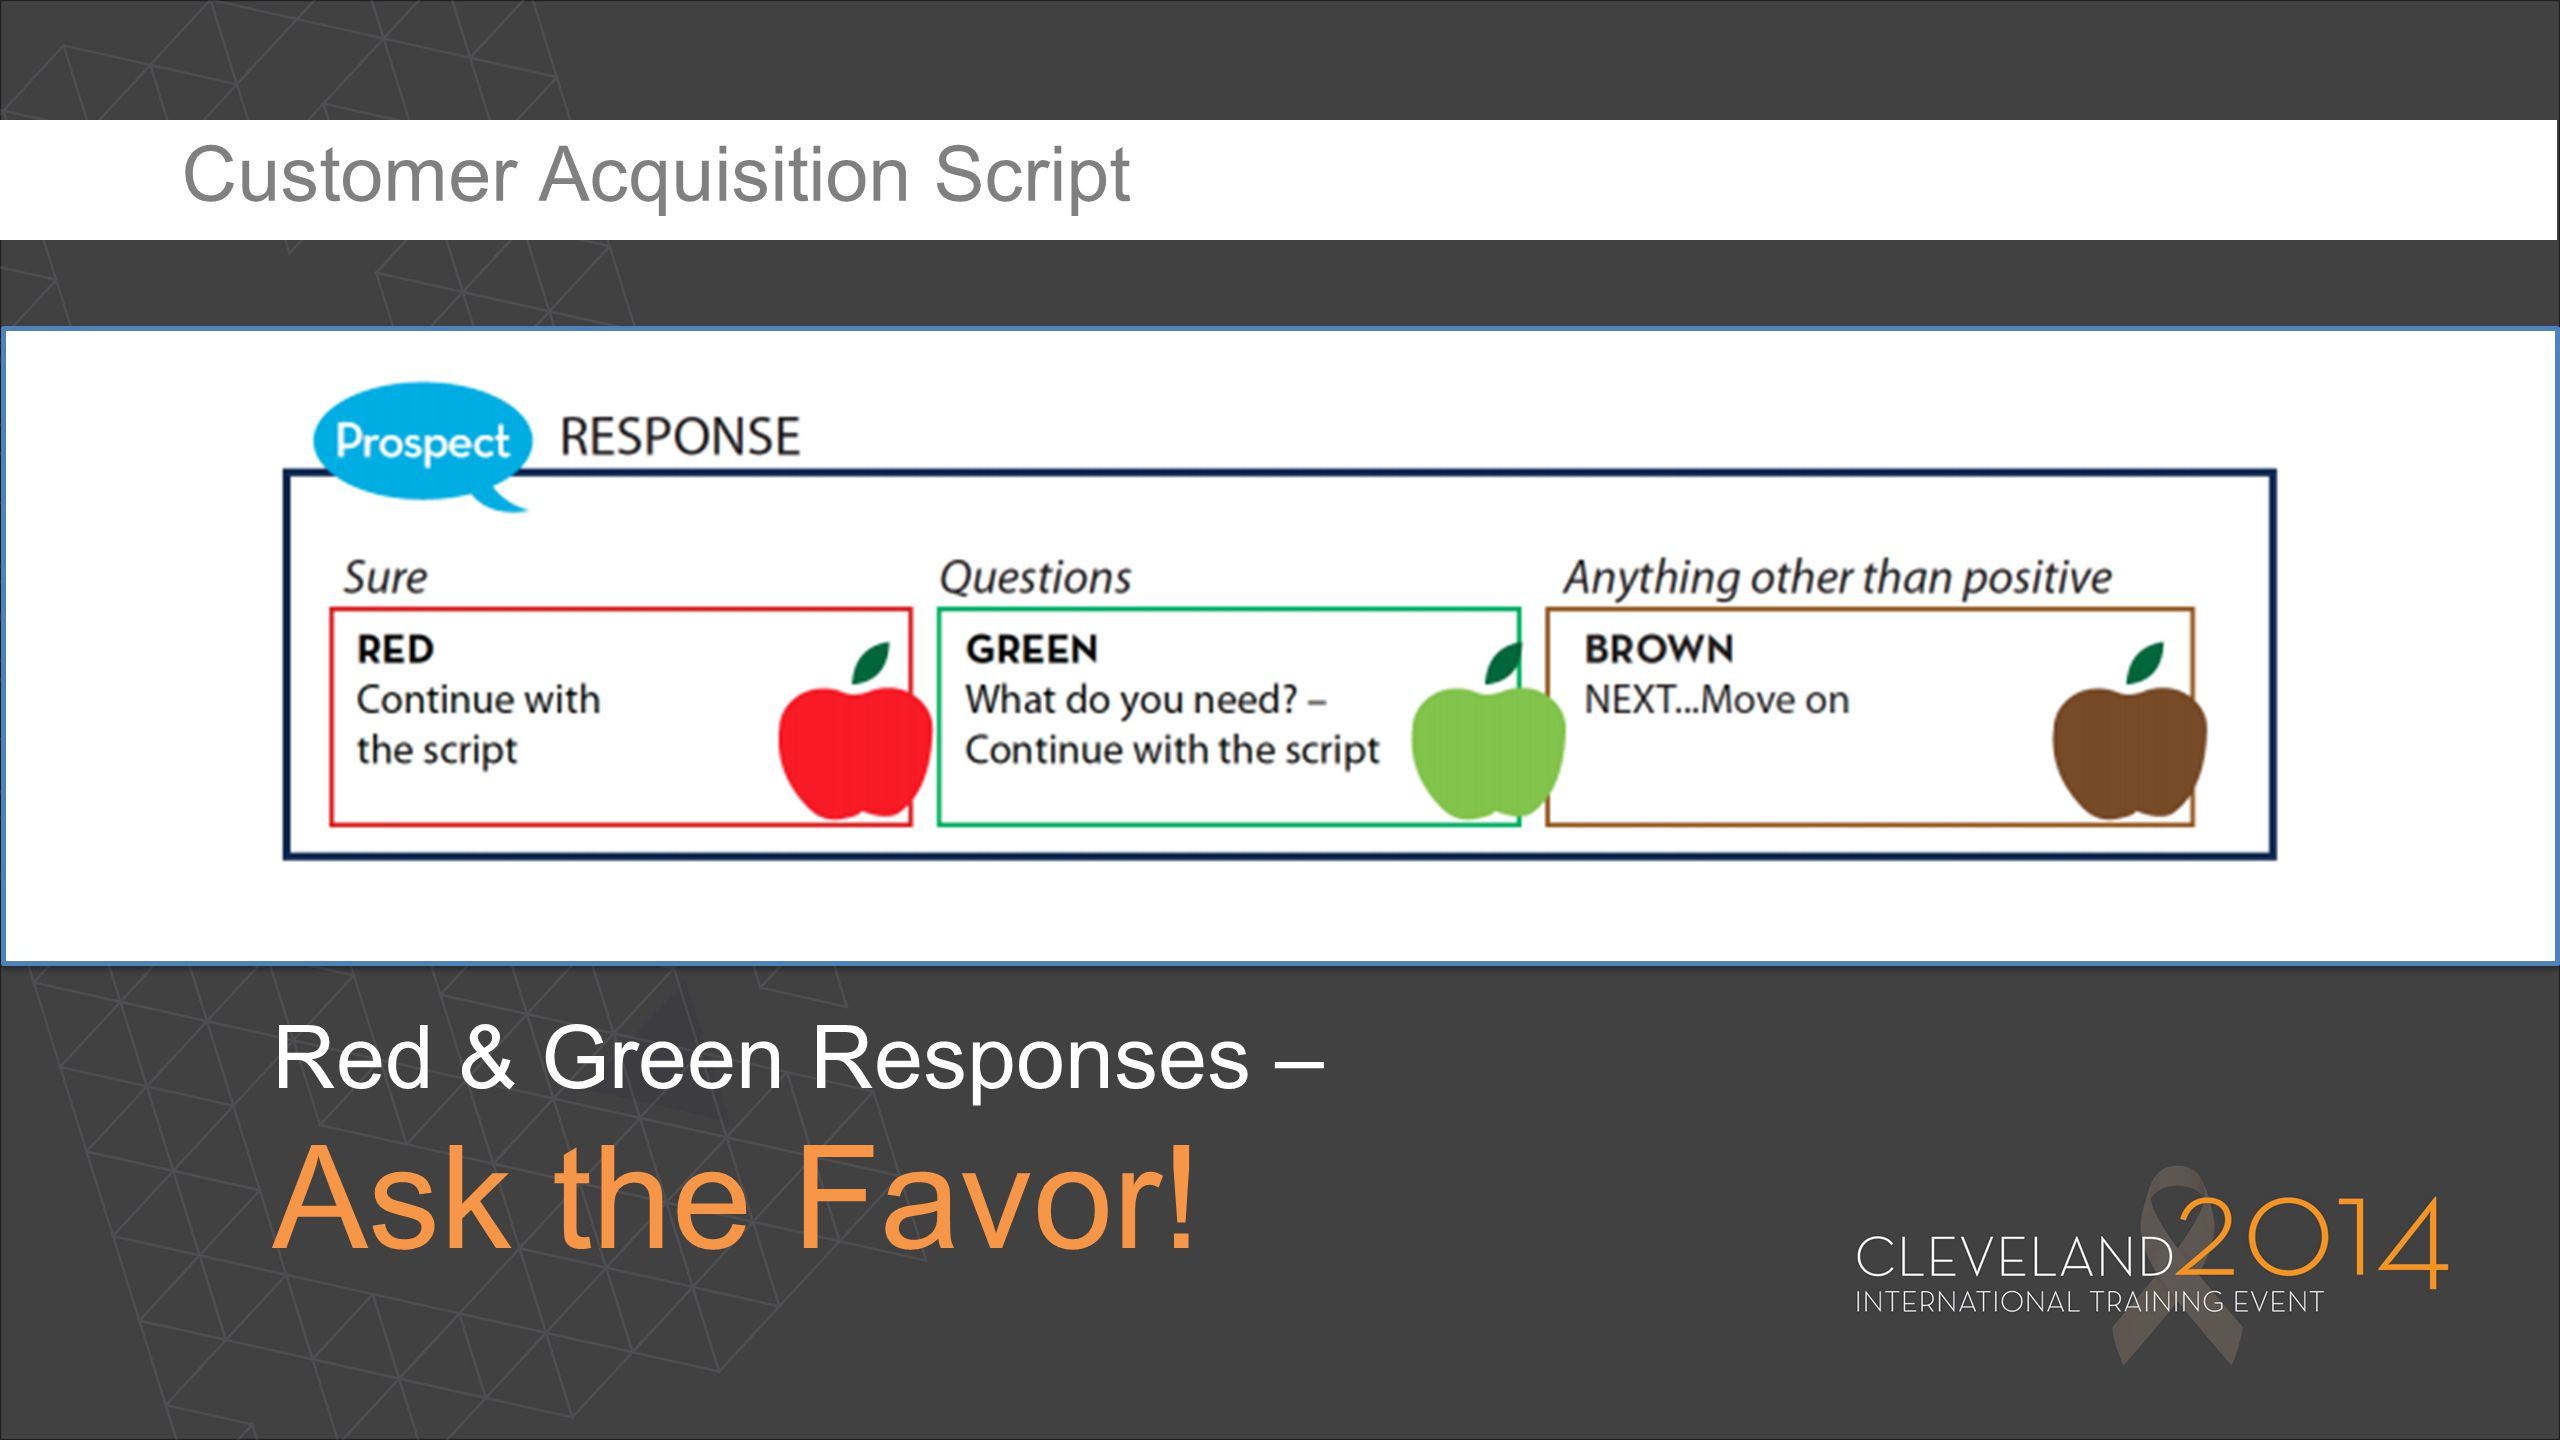 Red & Green Responses – Ask the Favor!